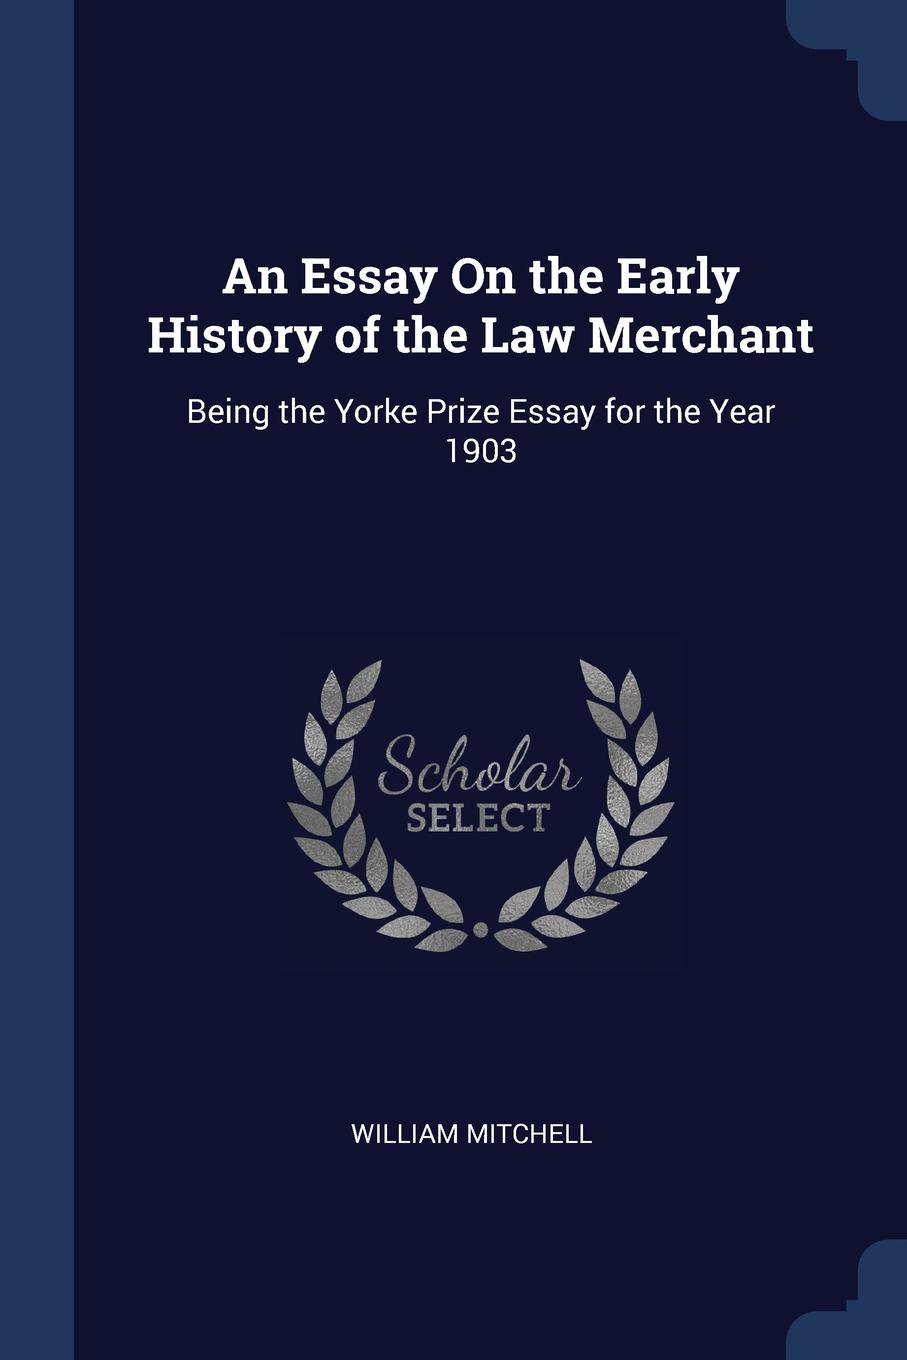 William Mitchell An Essay On the Early History of Law Merchant. Being Yorke Prize for Year 1903